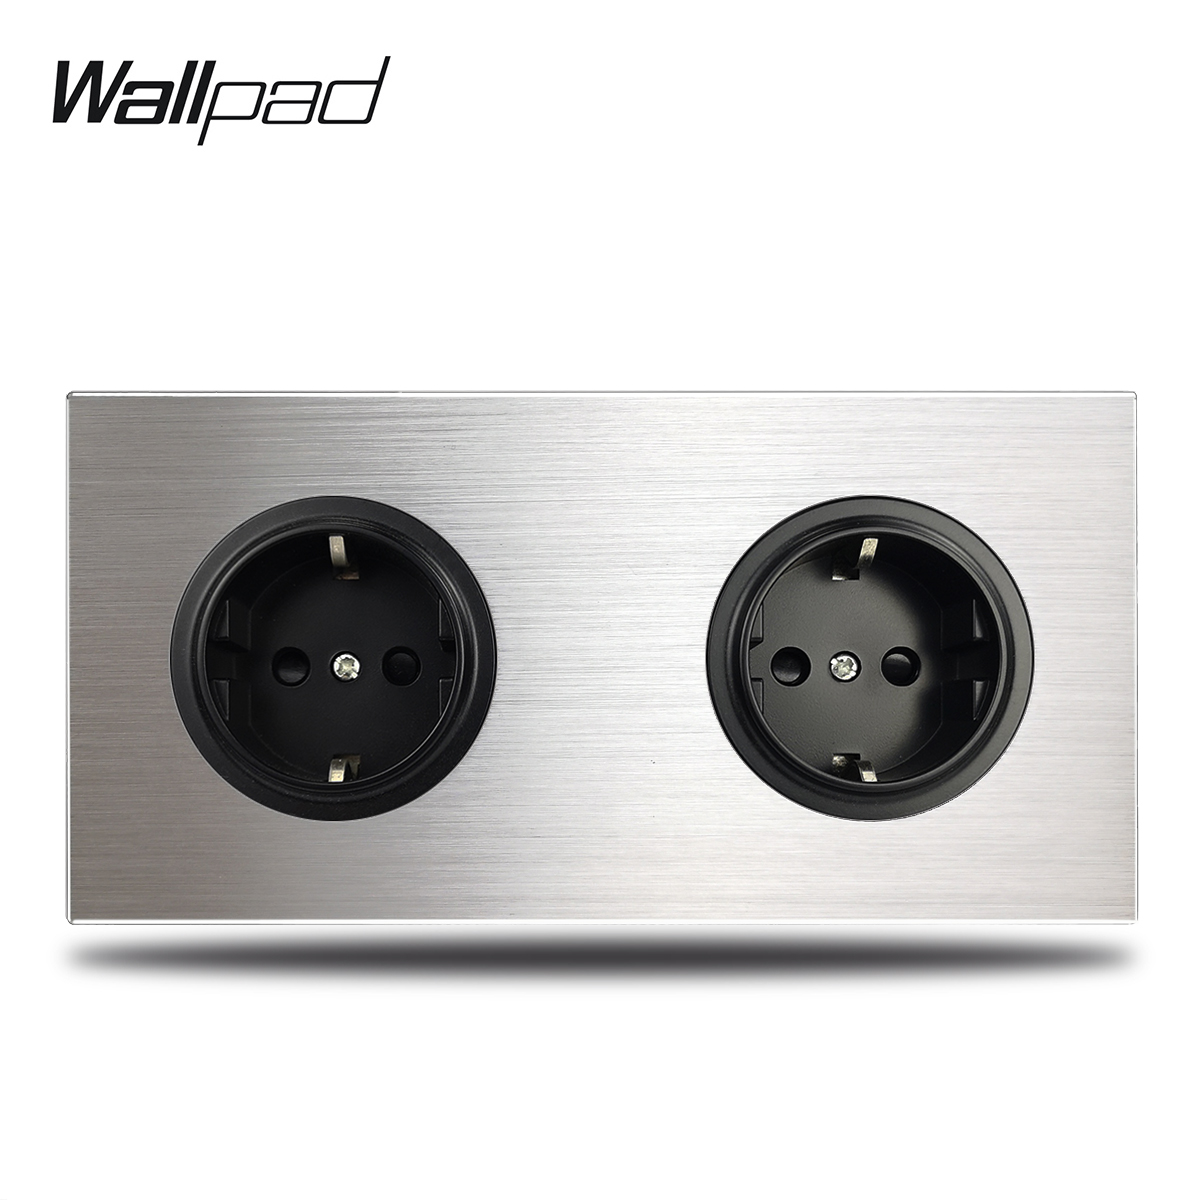 Wallpad Grey 2 Gang Double EU Wall Electric Outlet Socket German Plug Silver Brushed Aluminum Panel Double Plate 172 * 86 Mm